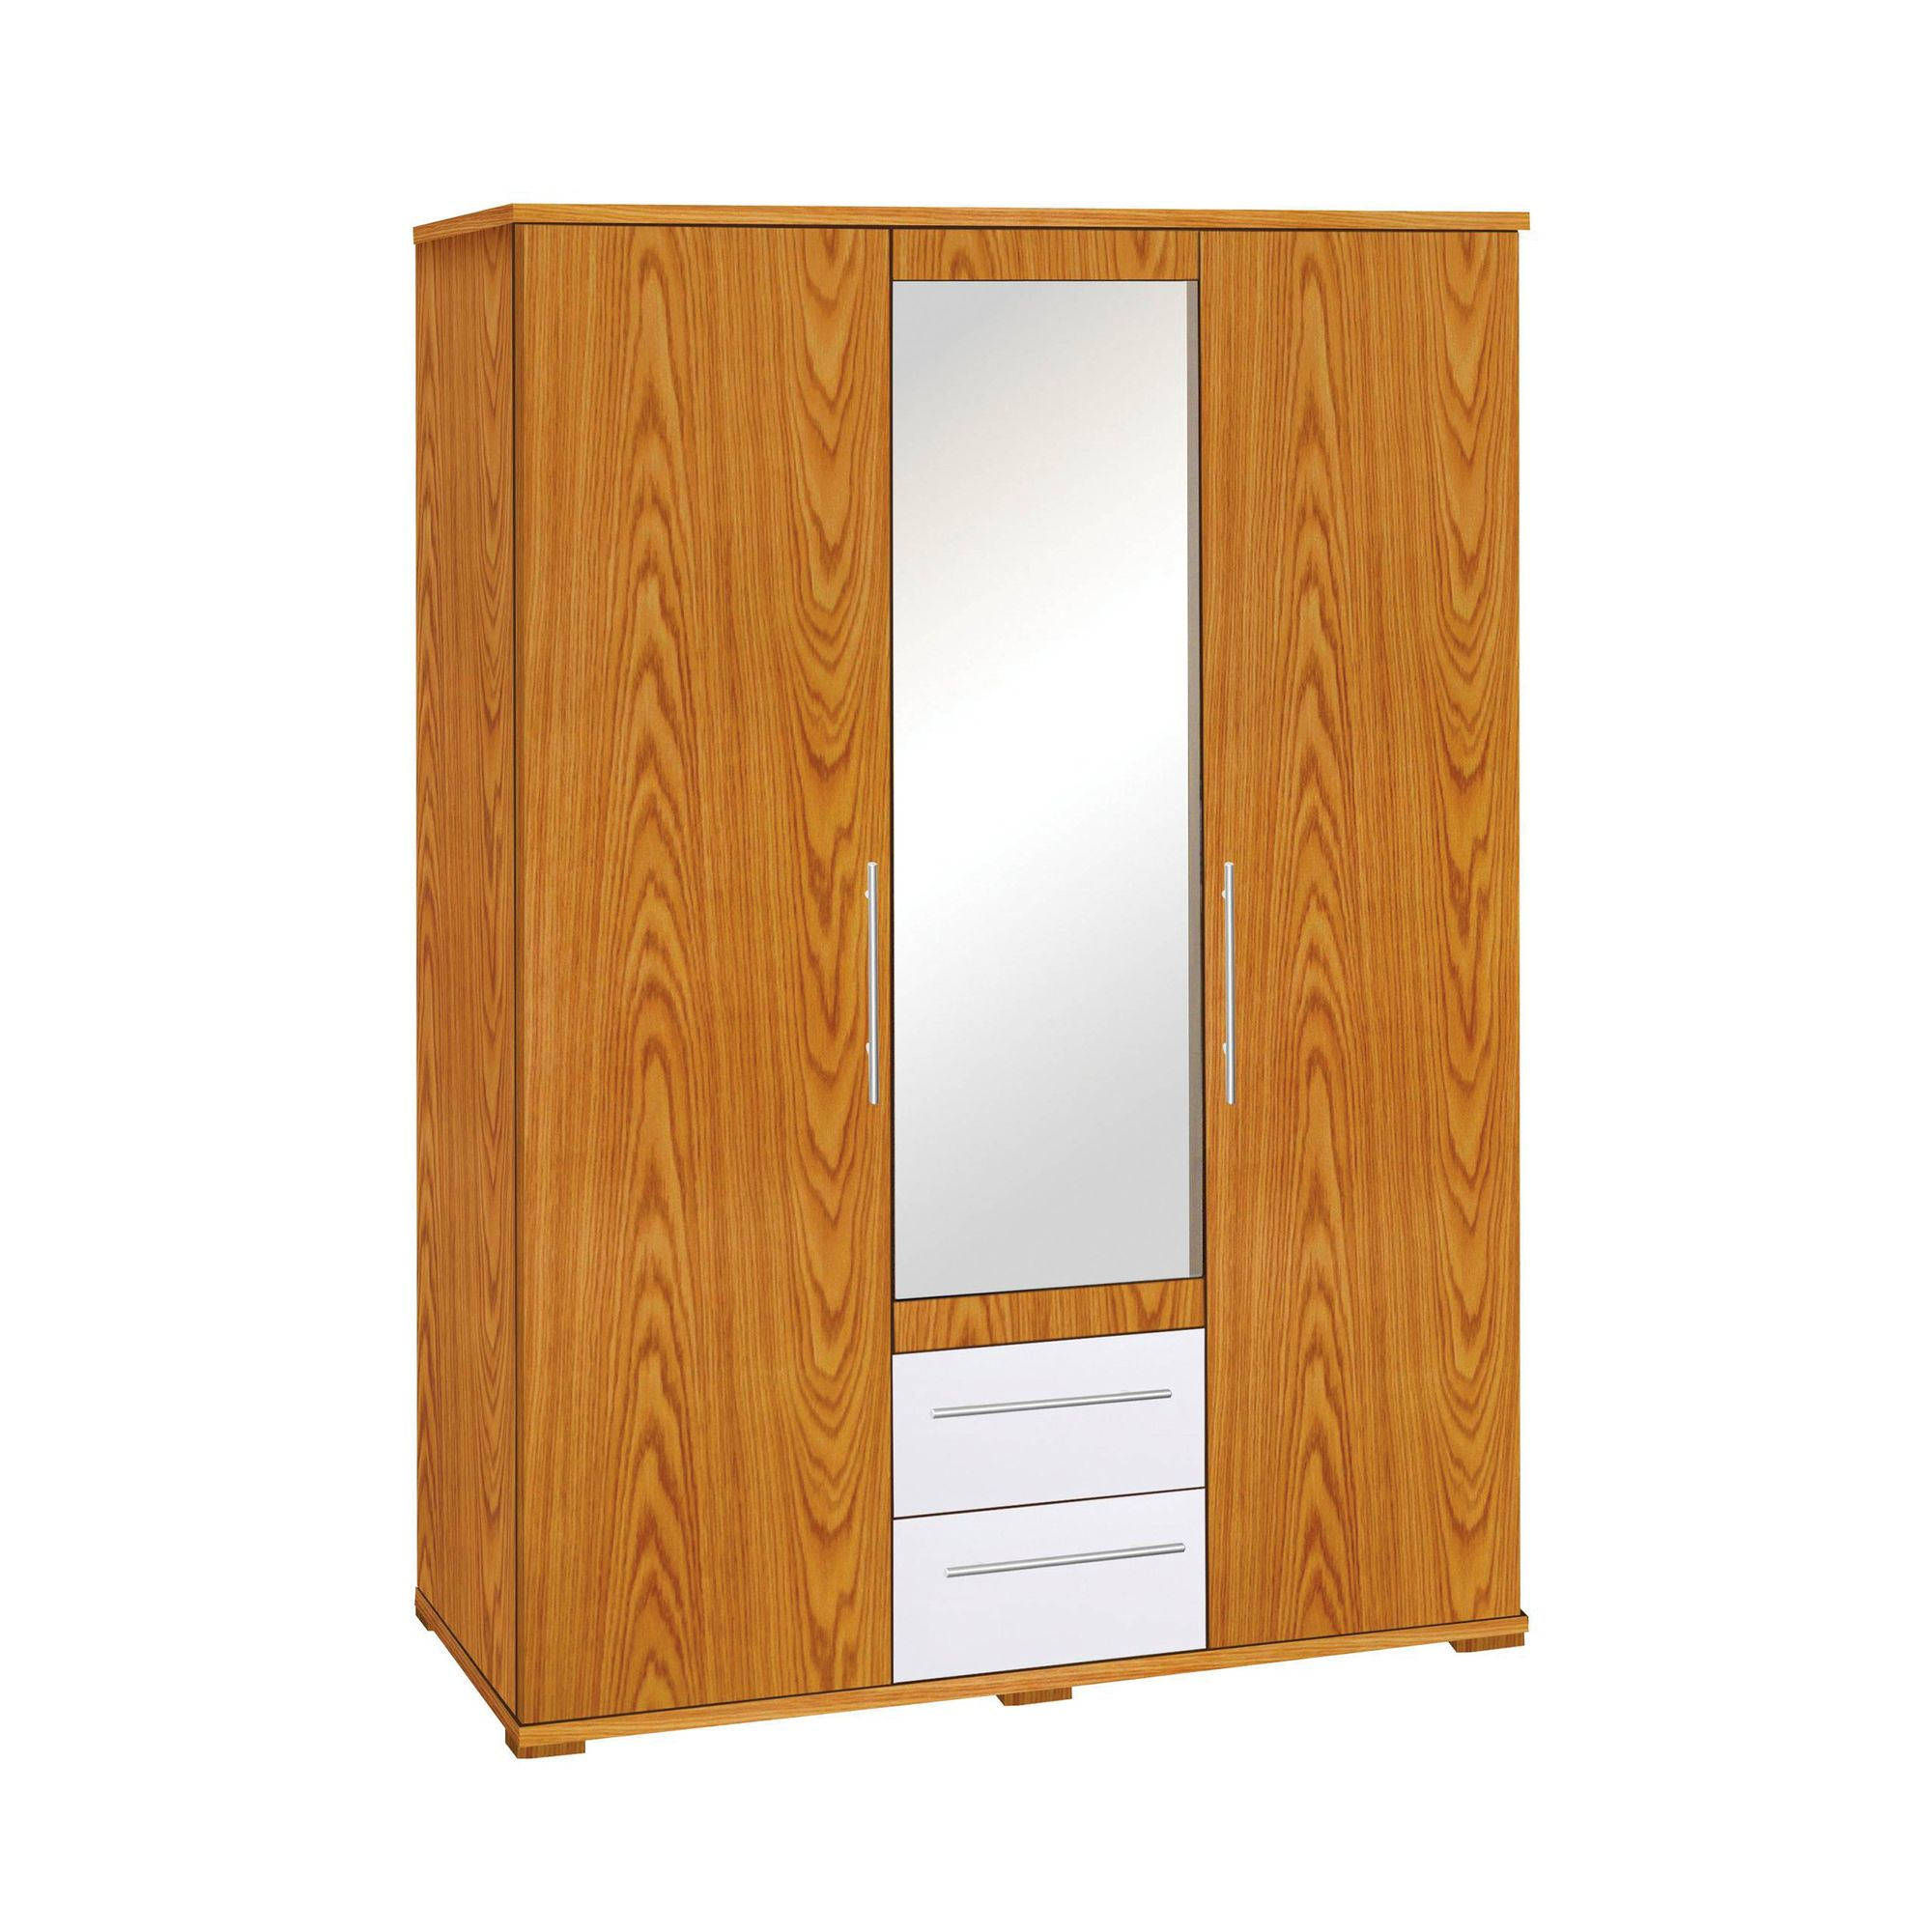 Premier Housewares Hudson Three Door Wardrobe at Tesco Direct